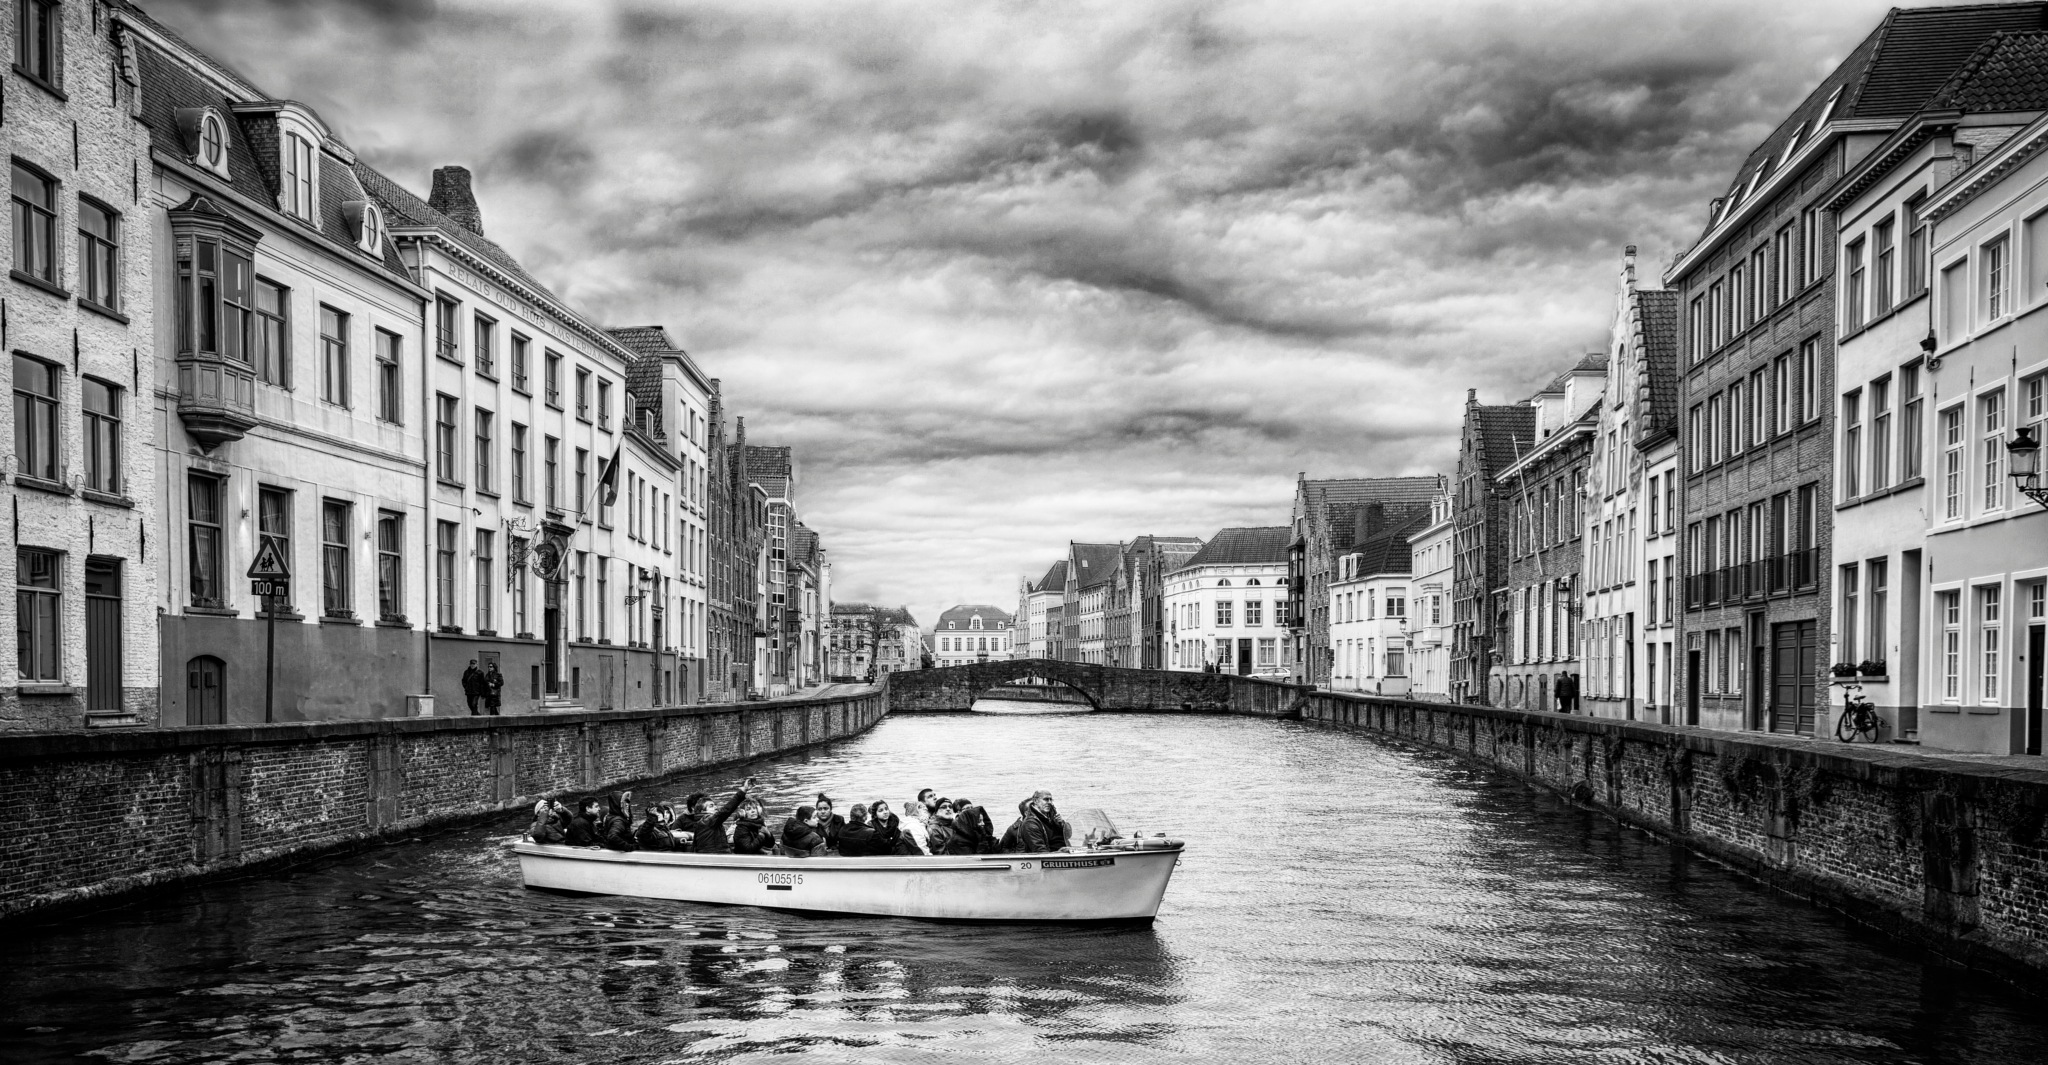 In Bruges by Maurits De Groen